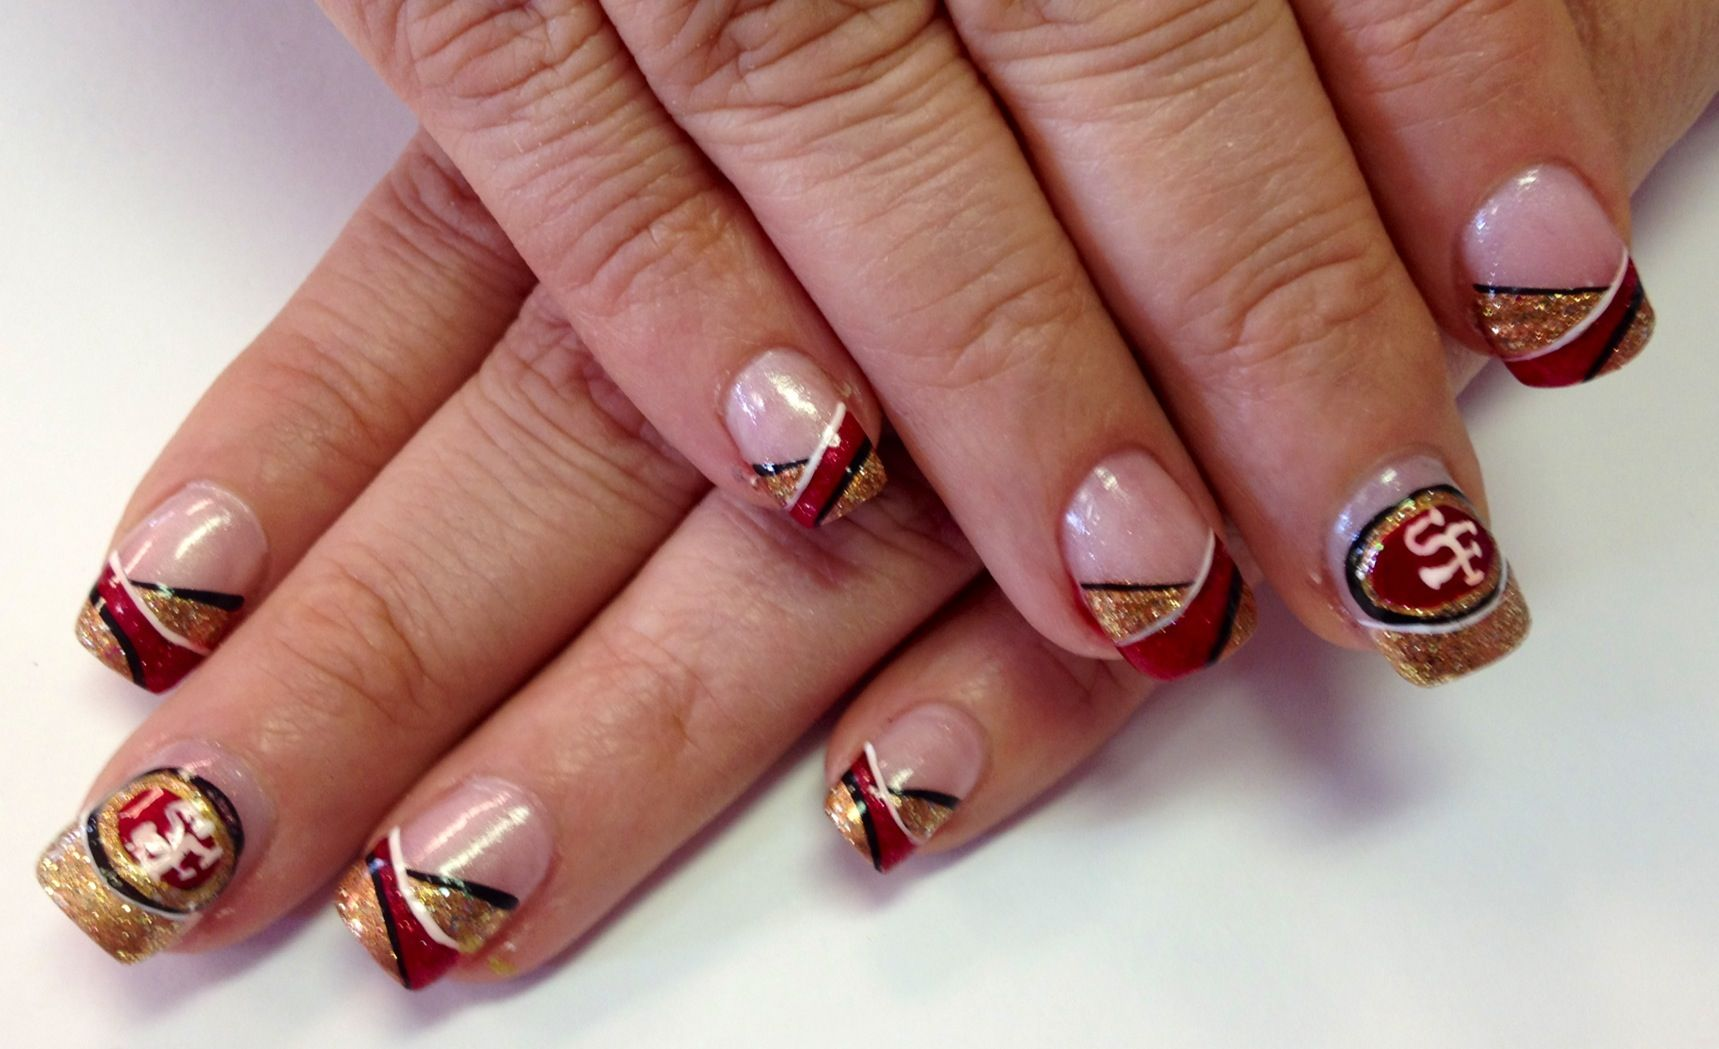 Pin by Jeannie Staiger-Jackson on Nails | Pinterest | 49ers nails ...